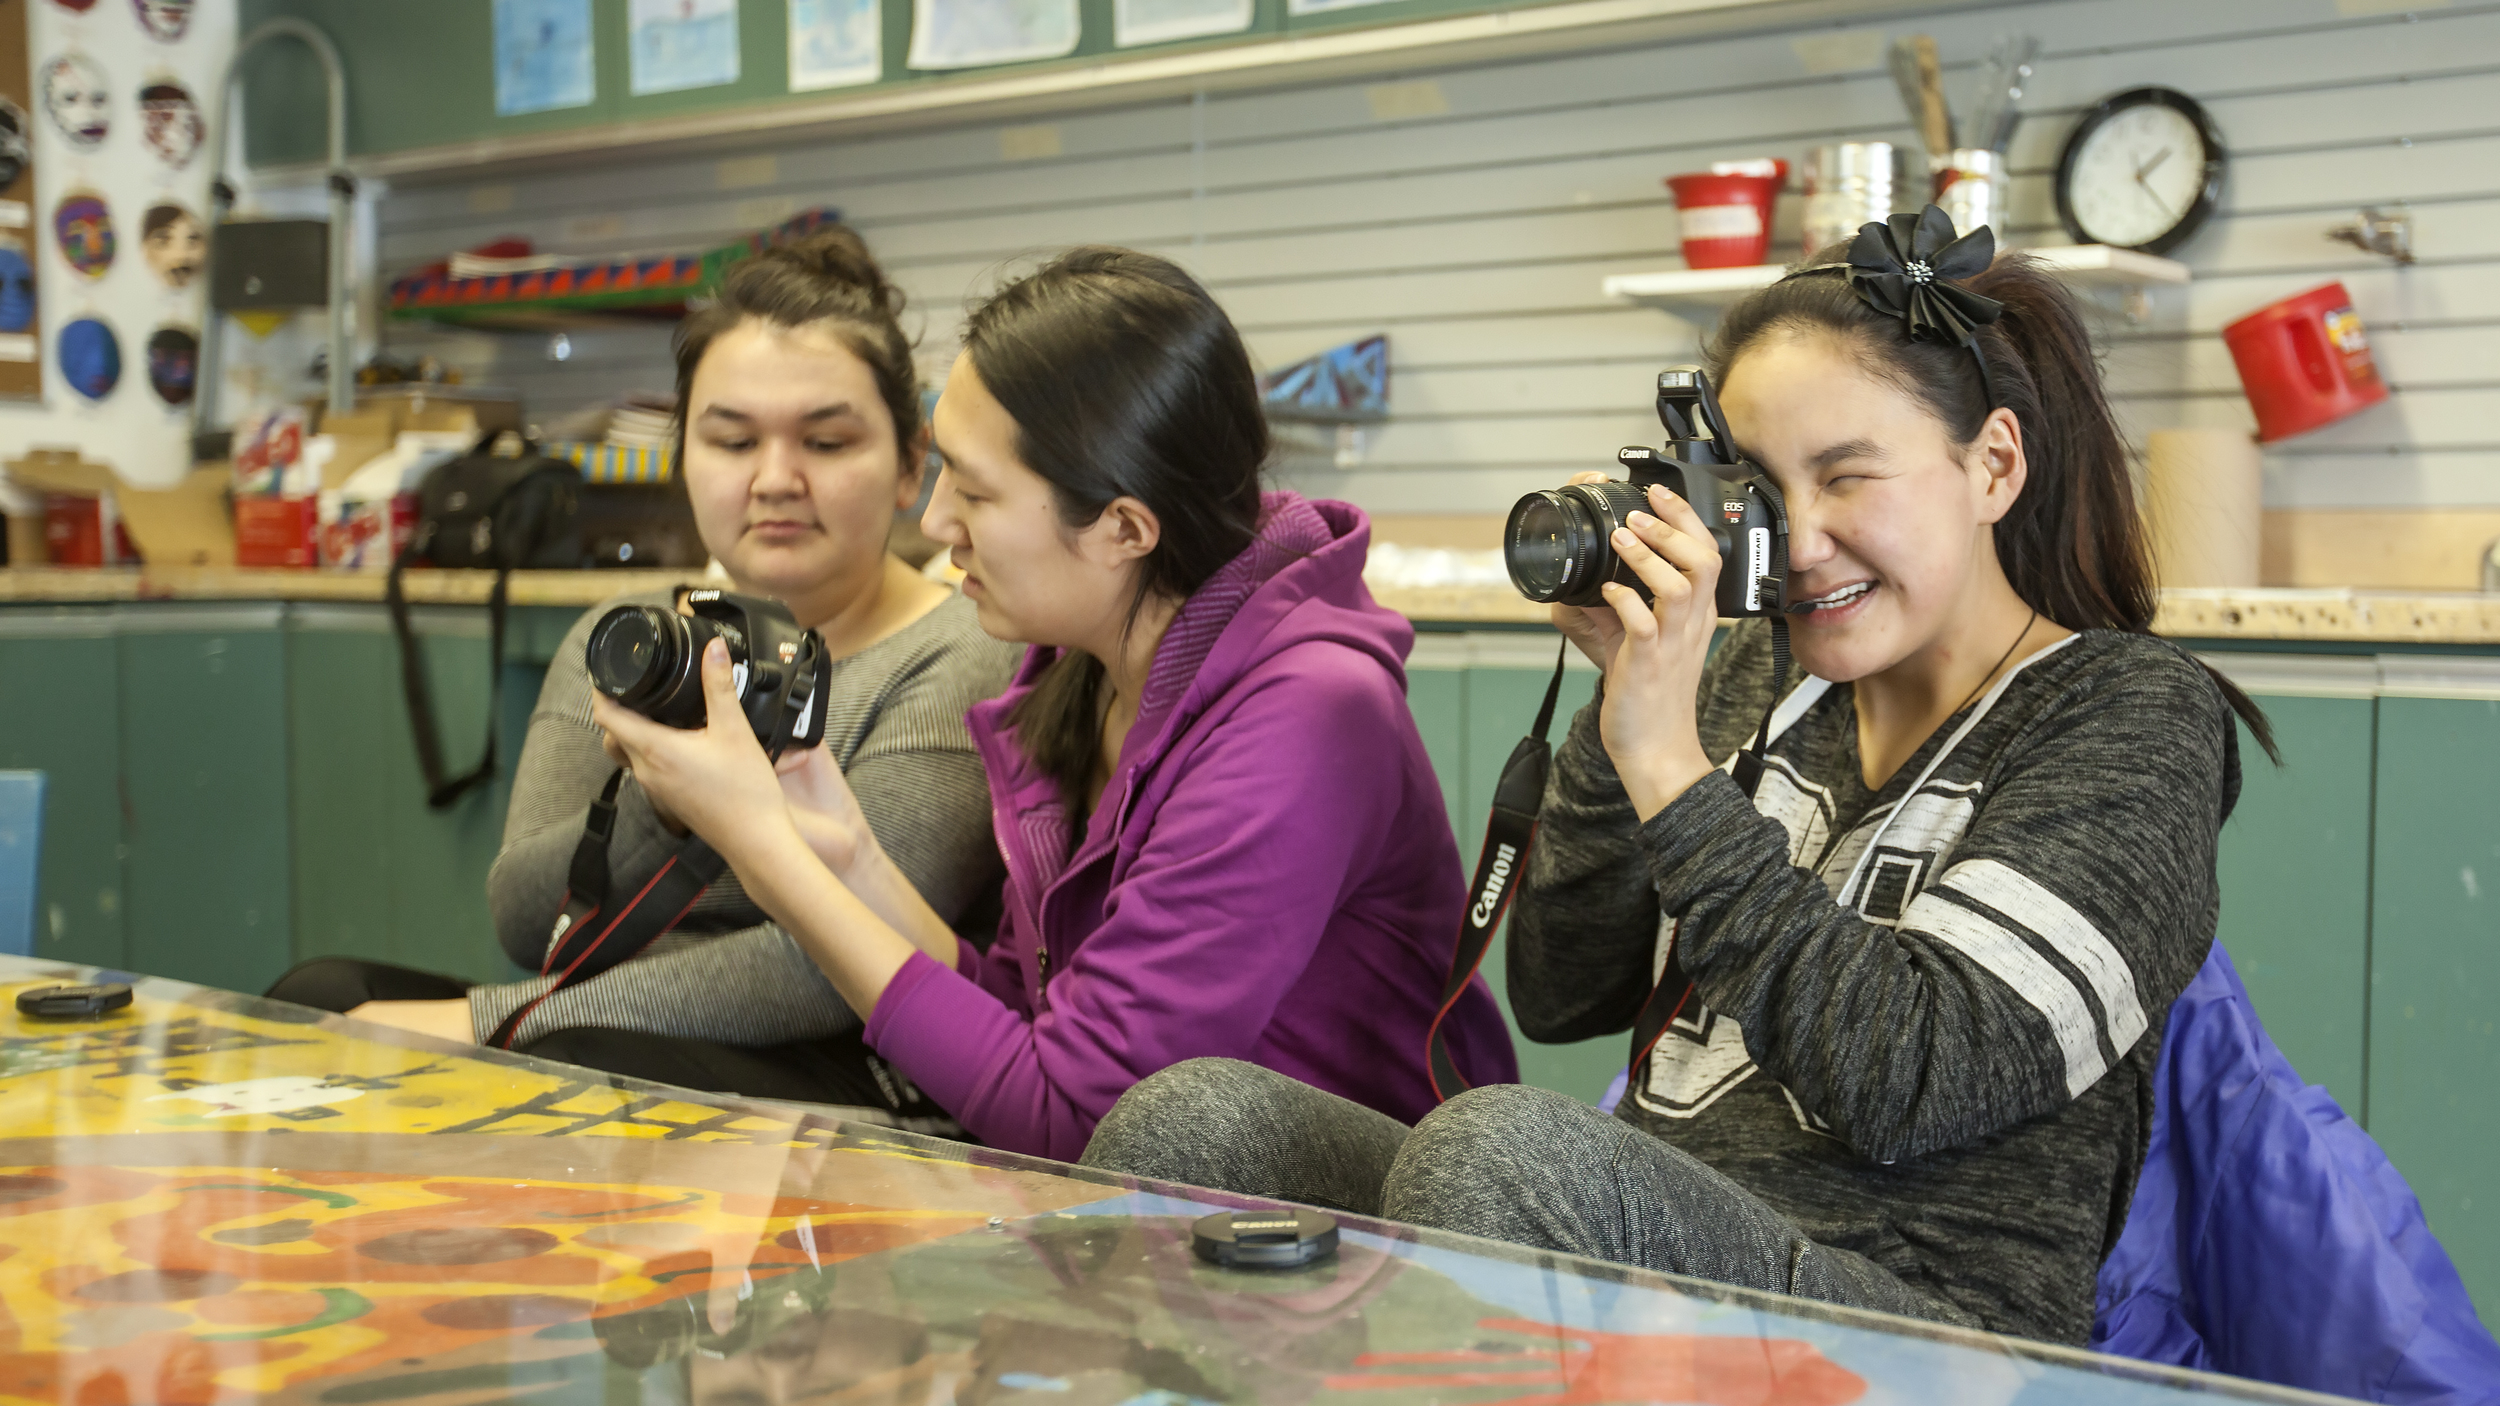 NIF co-founder Eva Wu teaching some students how to use the cameras. Photo by Eric Foss.